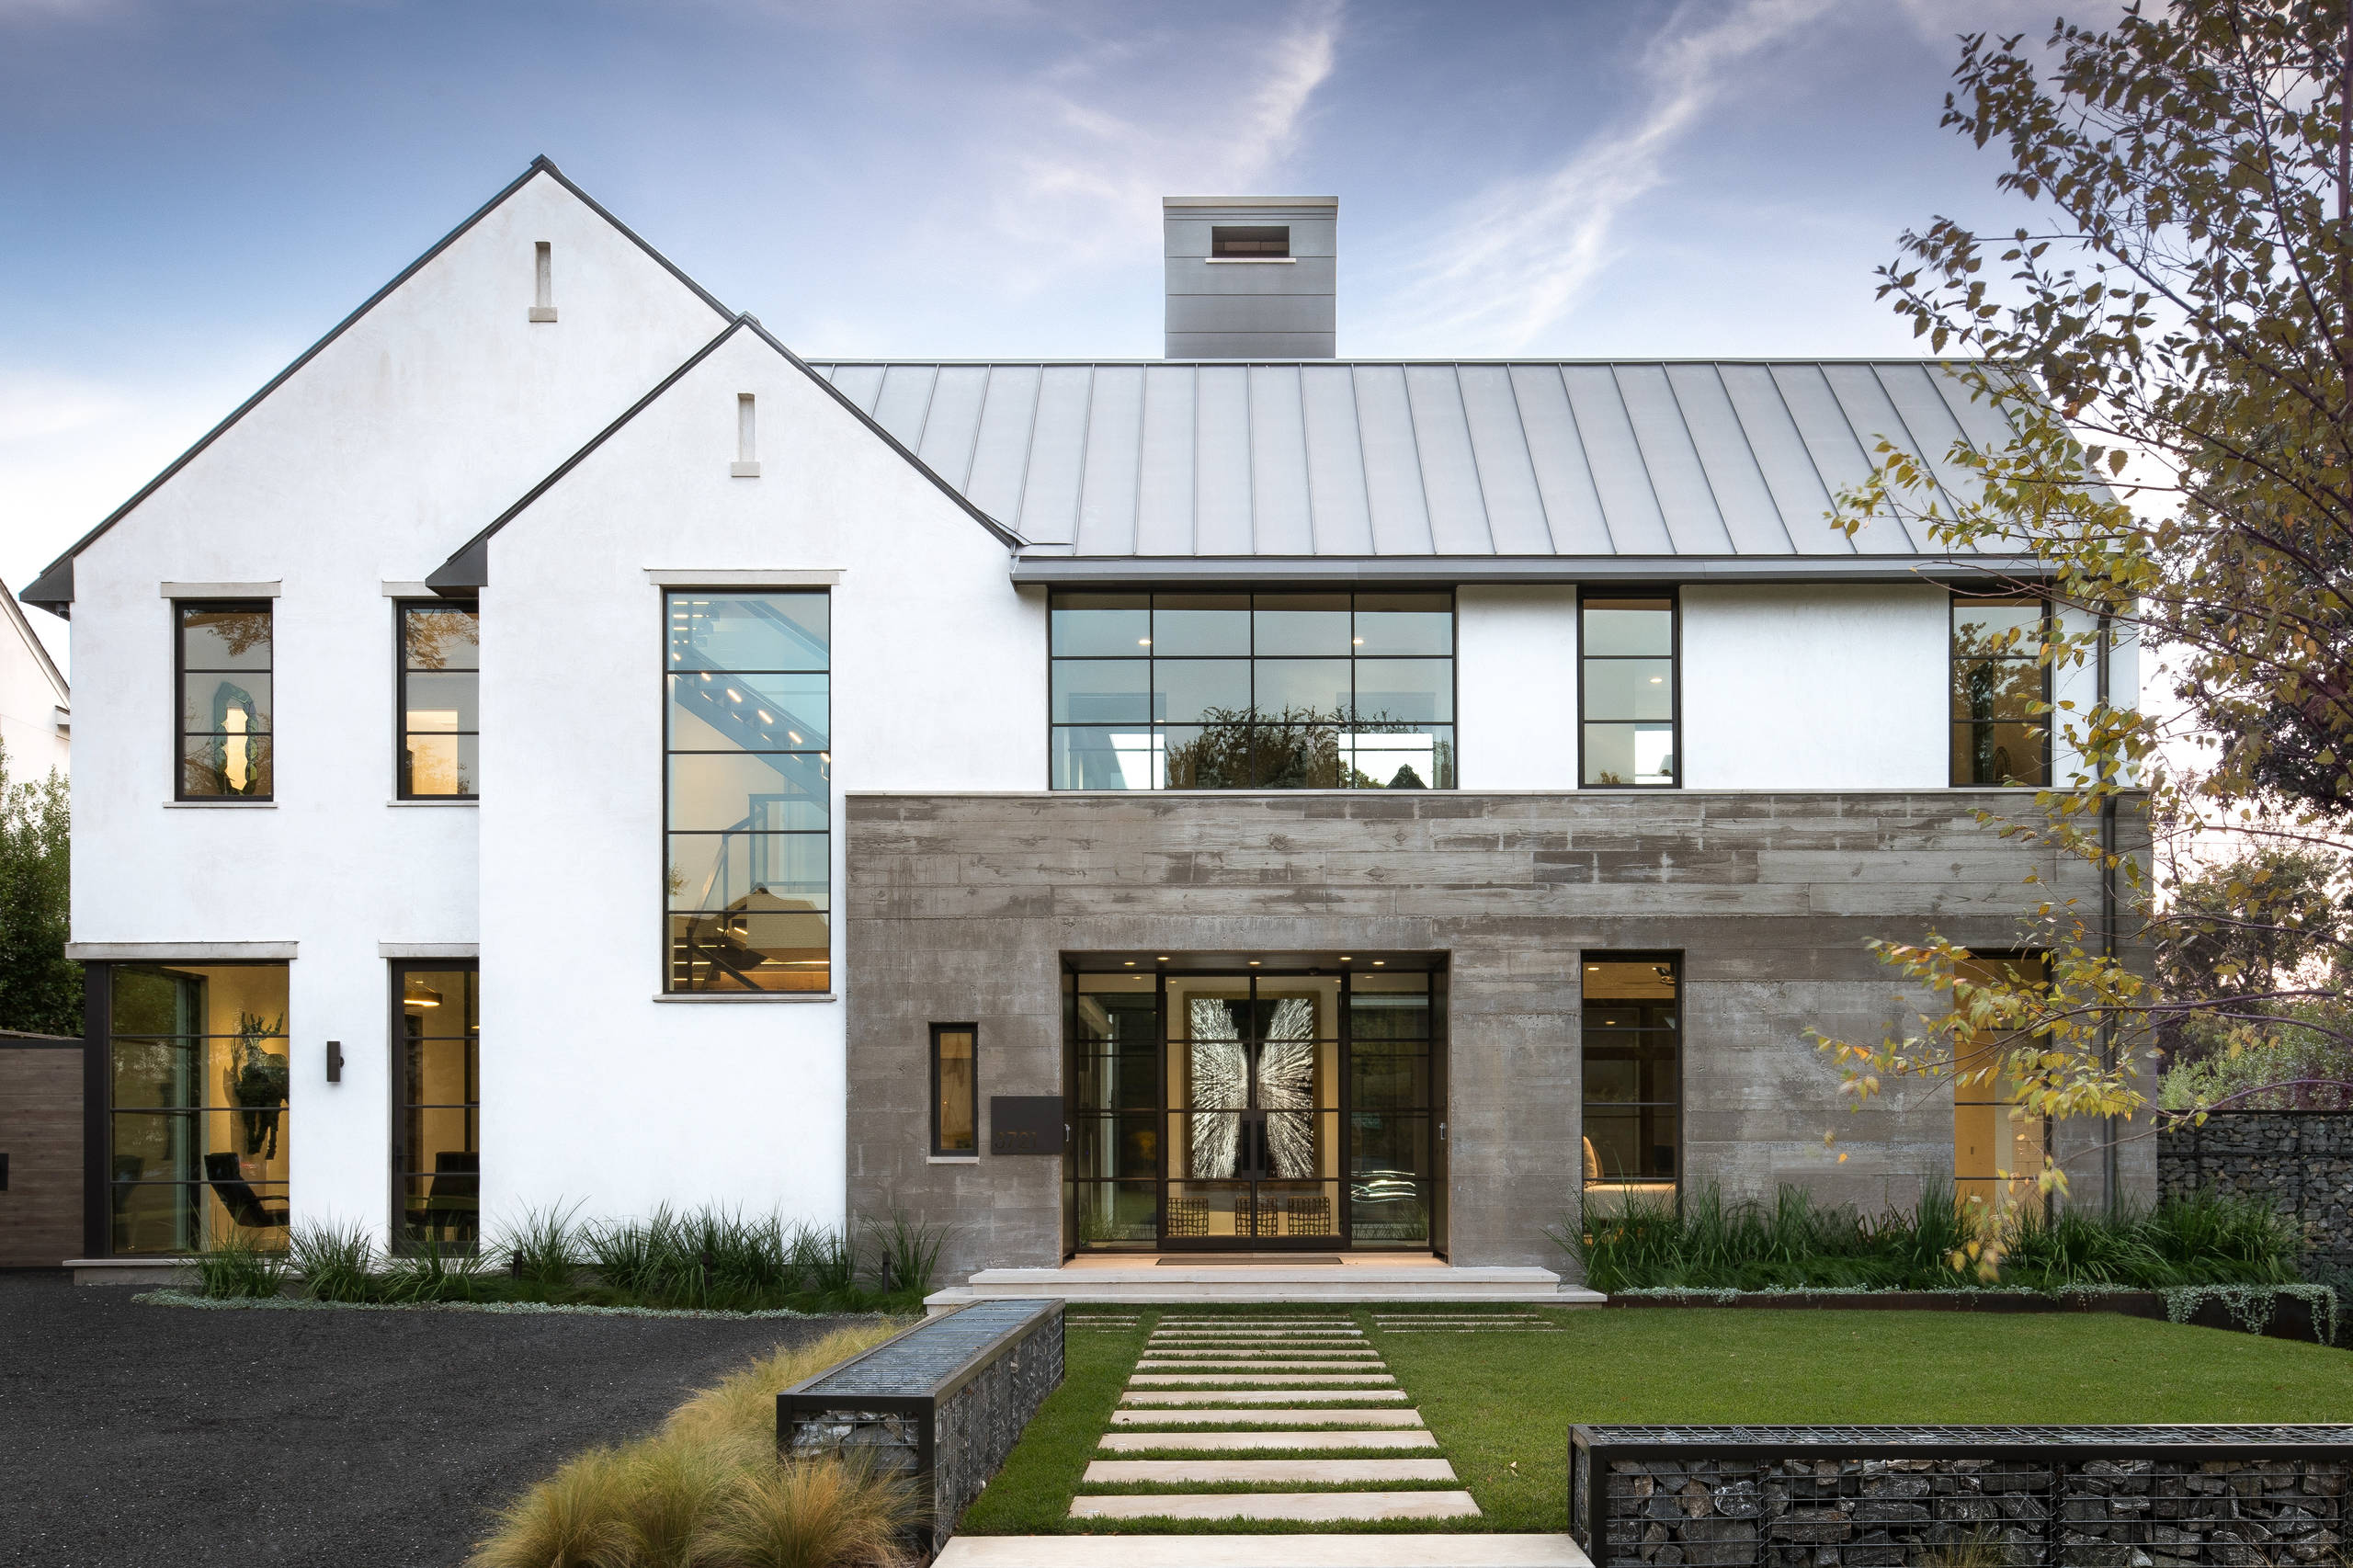 75 Beautiful Modern Gable Roof Pictures Ideas November 2020 Houzz